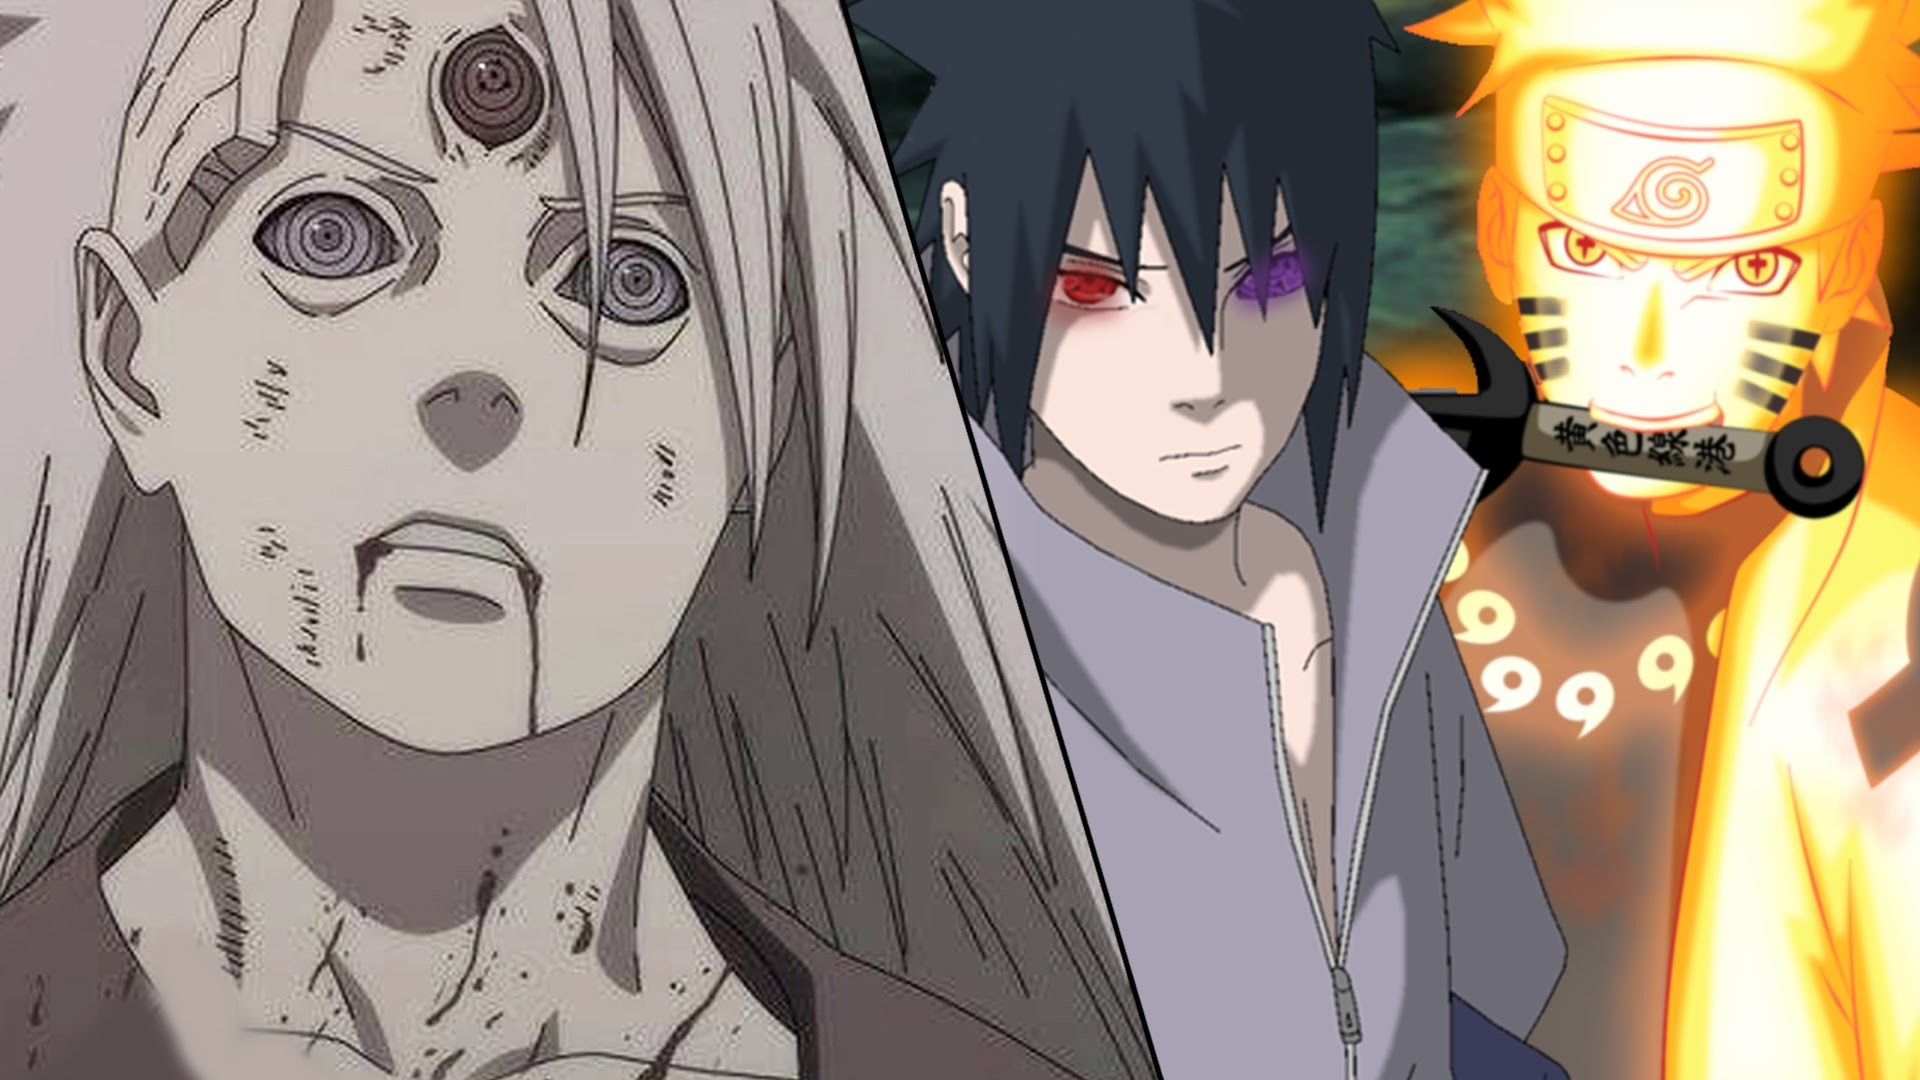 naruto and sasuke vs madara wallpapers 54 images